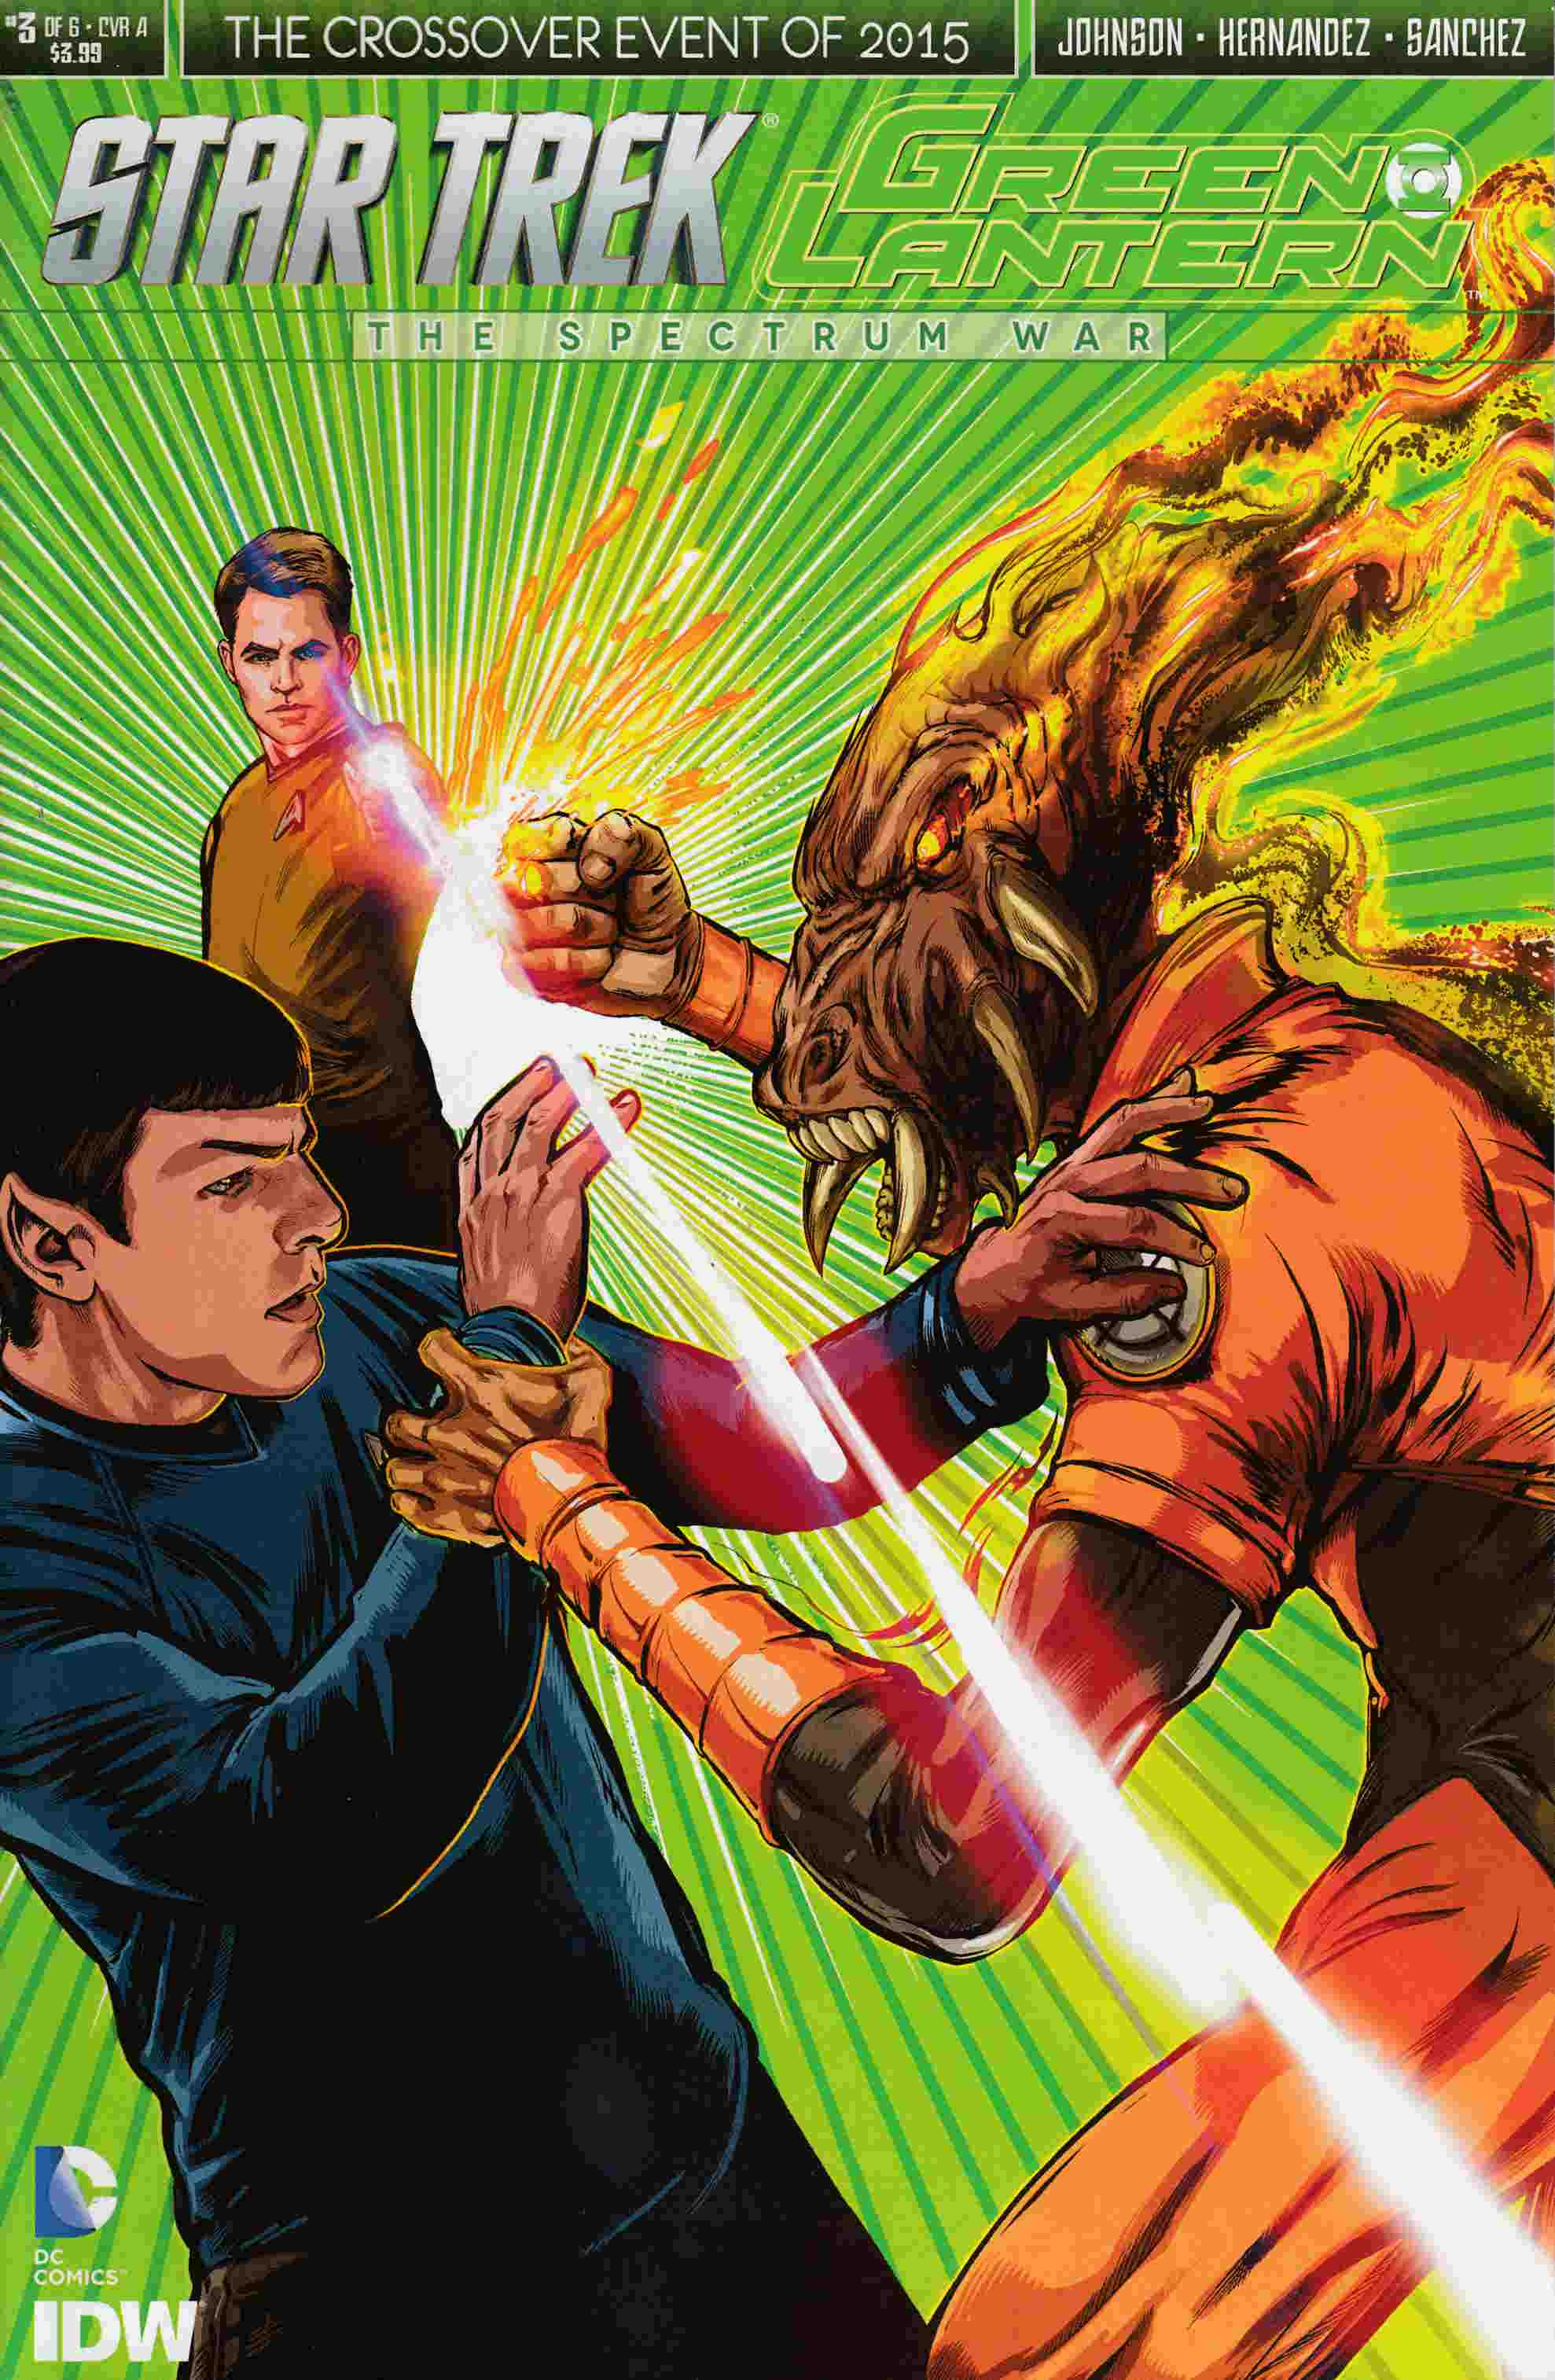 Star Trek Green Lantern #3 Cover A- Shasteen [IDW Comic]